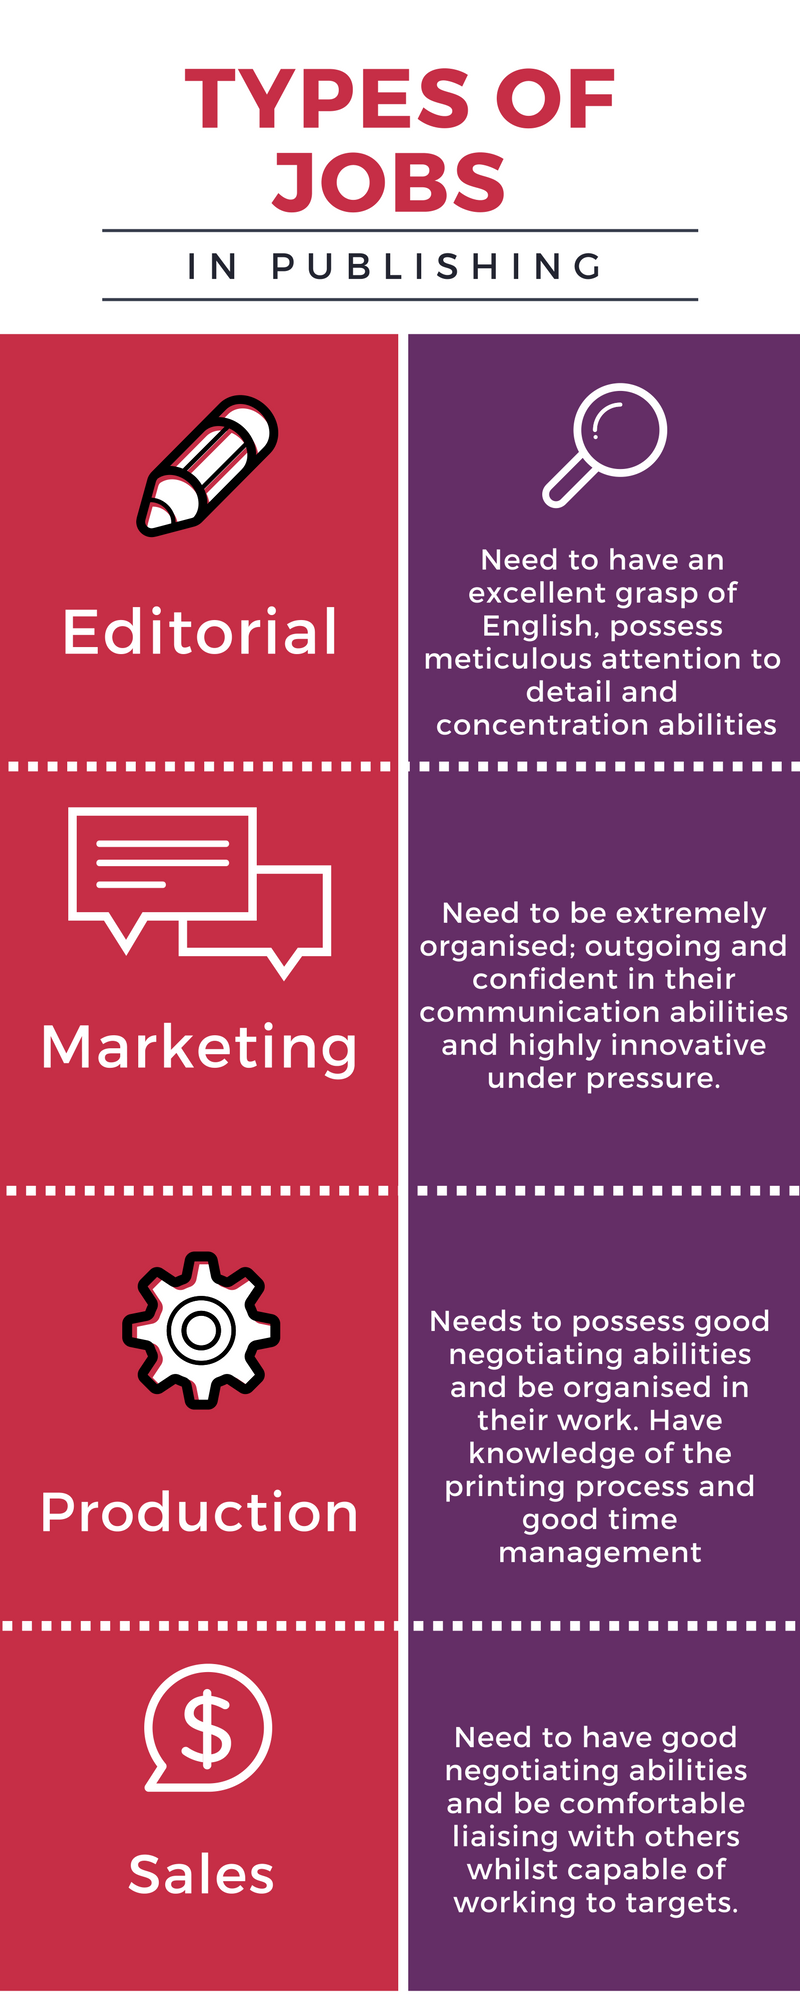 types of jobs in publishing editorial marketing production and types of jobs in publishing editorial marketing production and s roles for